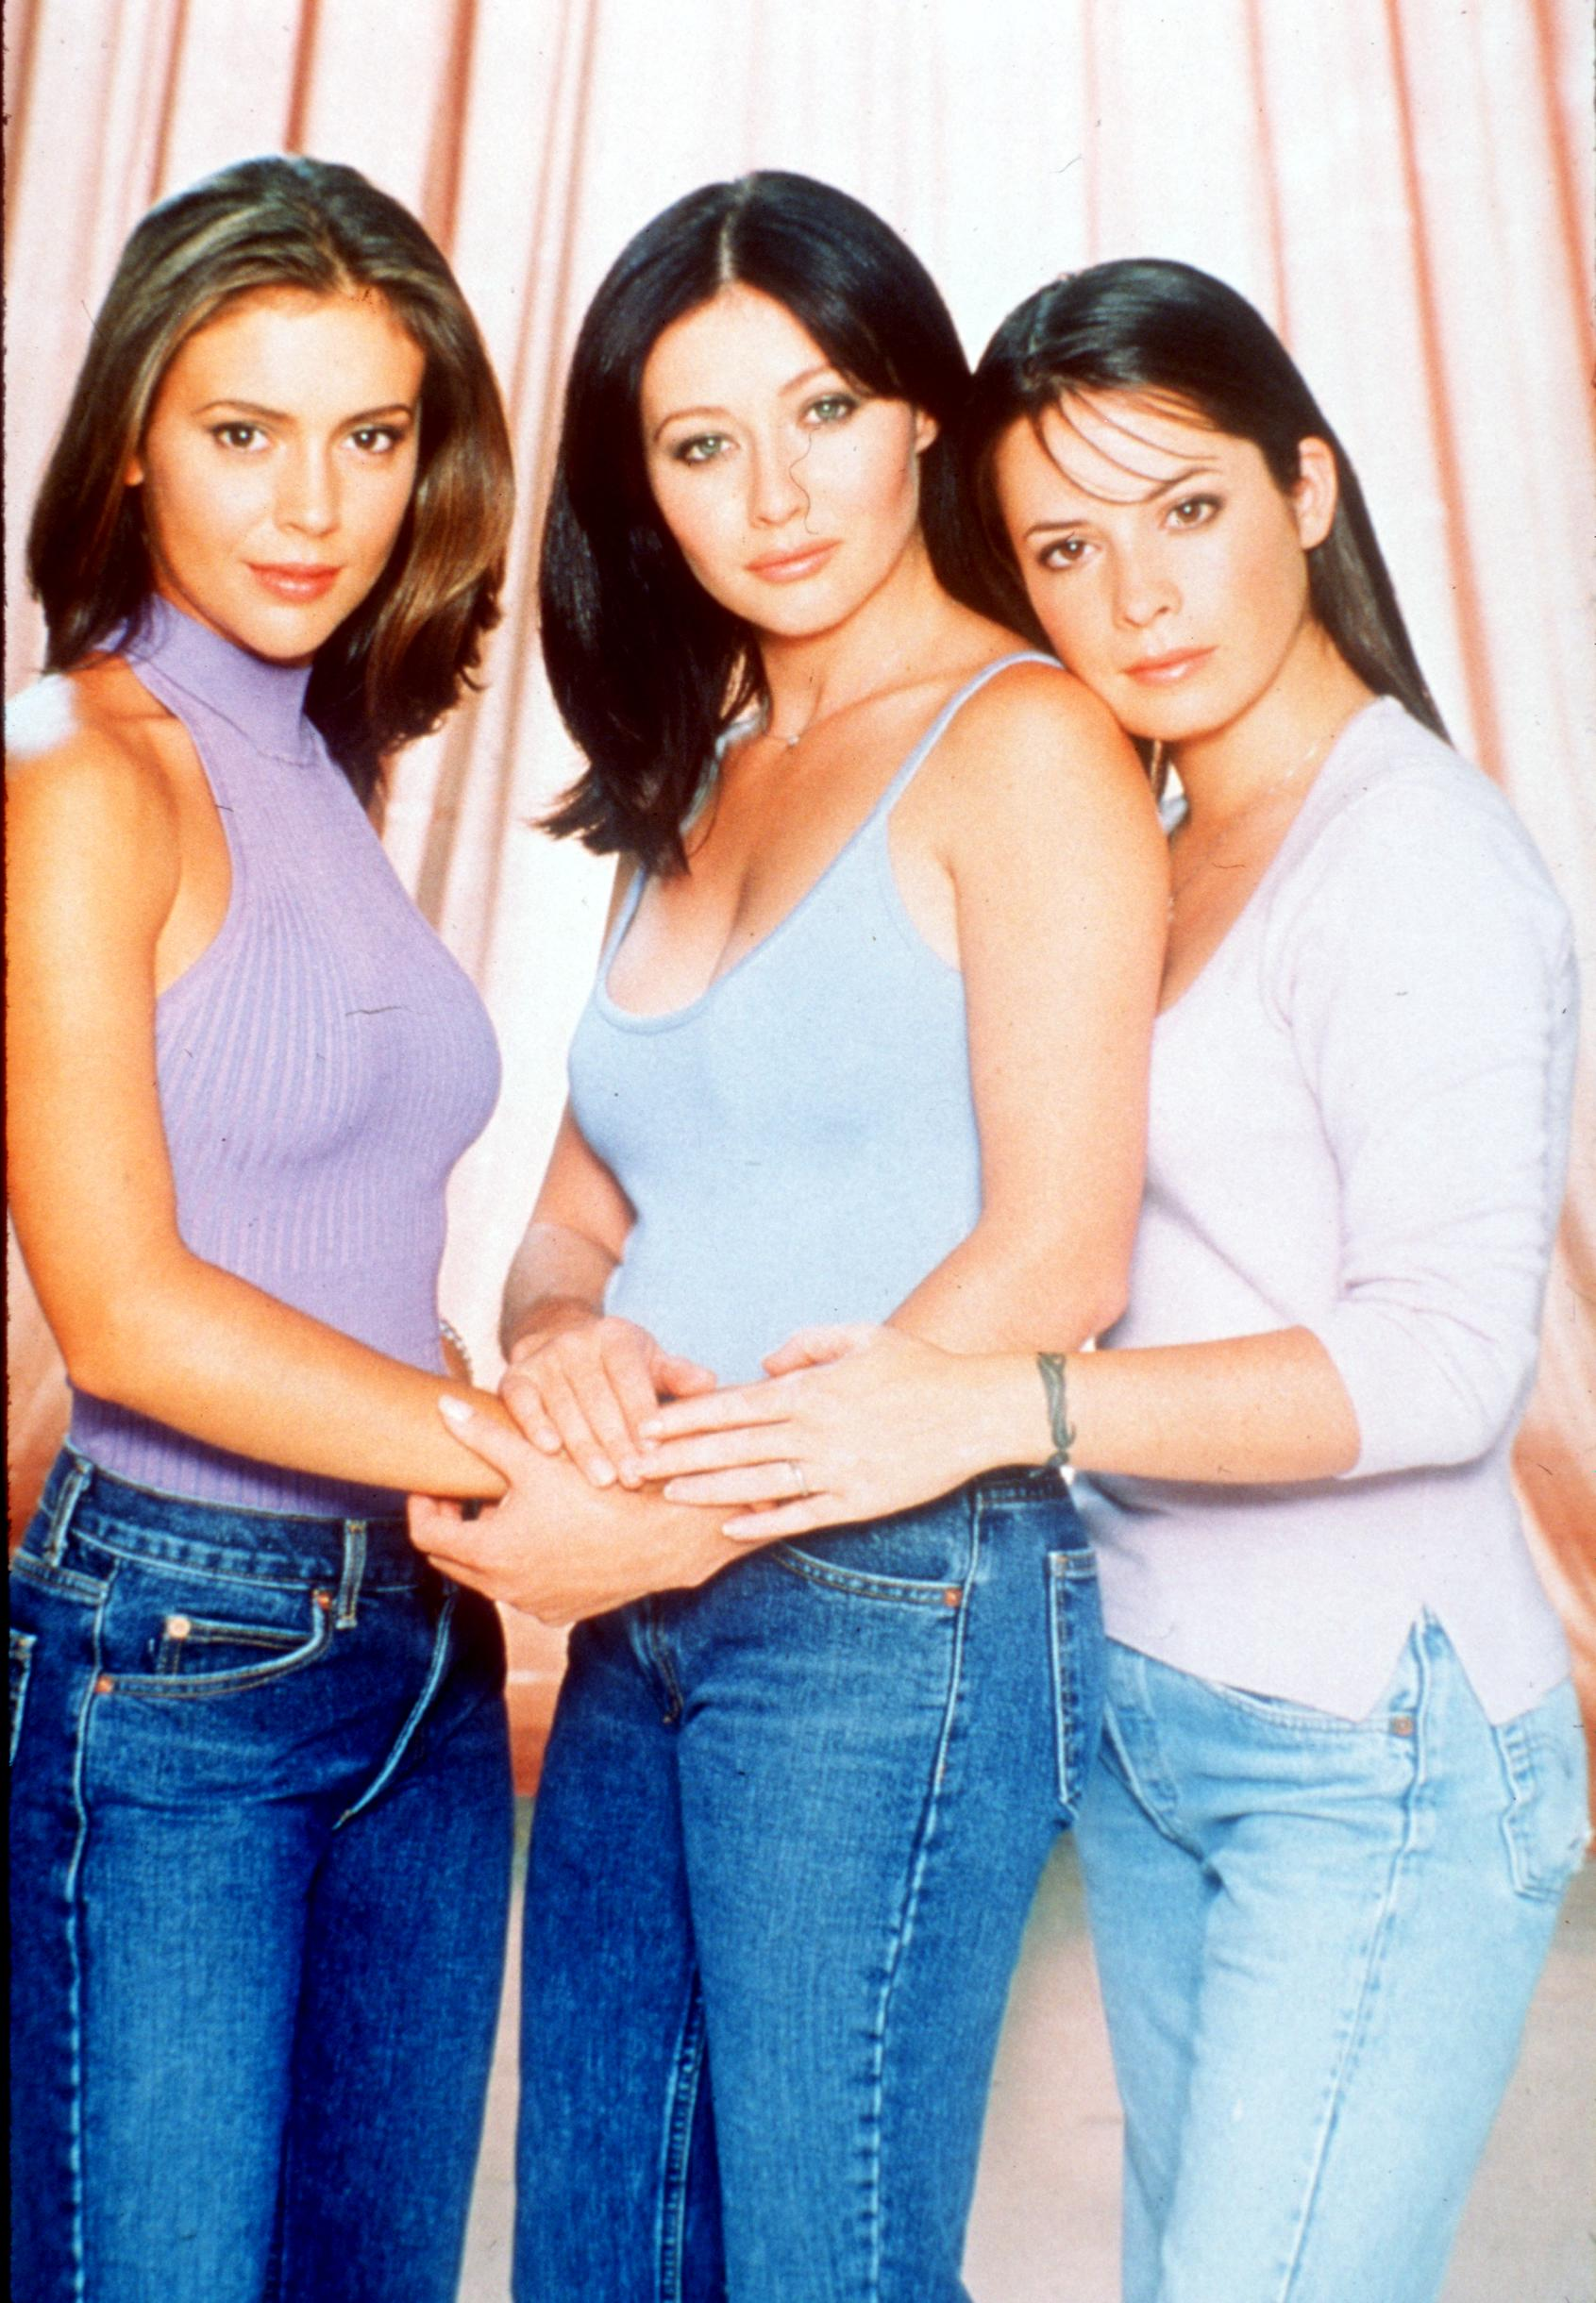 """Alyssa Milano, Holly Marie Combs, Shannen Doherty from the television show """"Charmed"""" in 1999.   Source: Getty Images."""